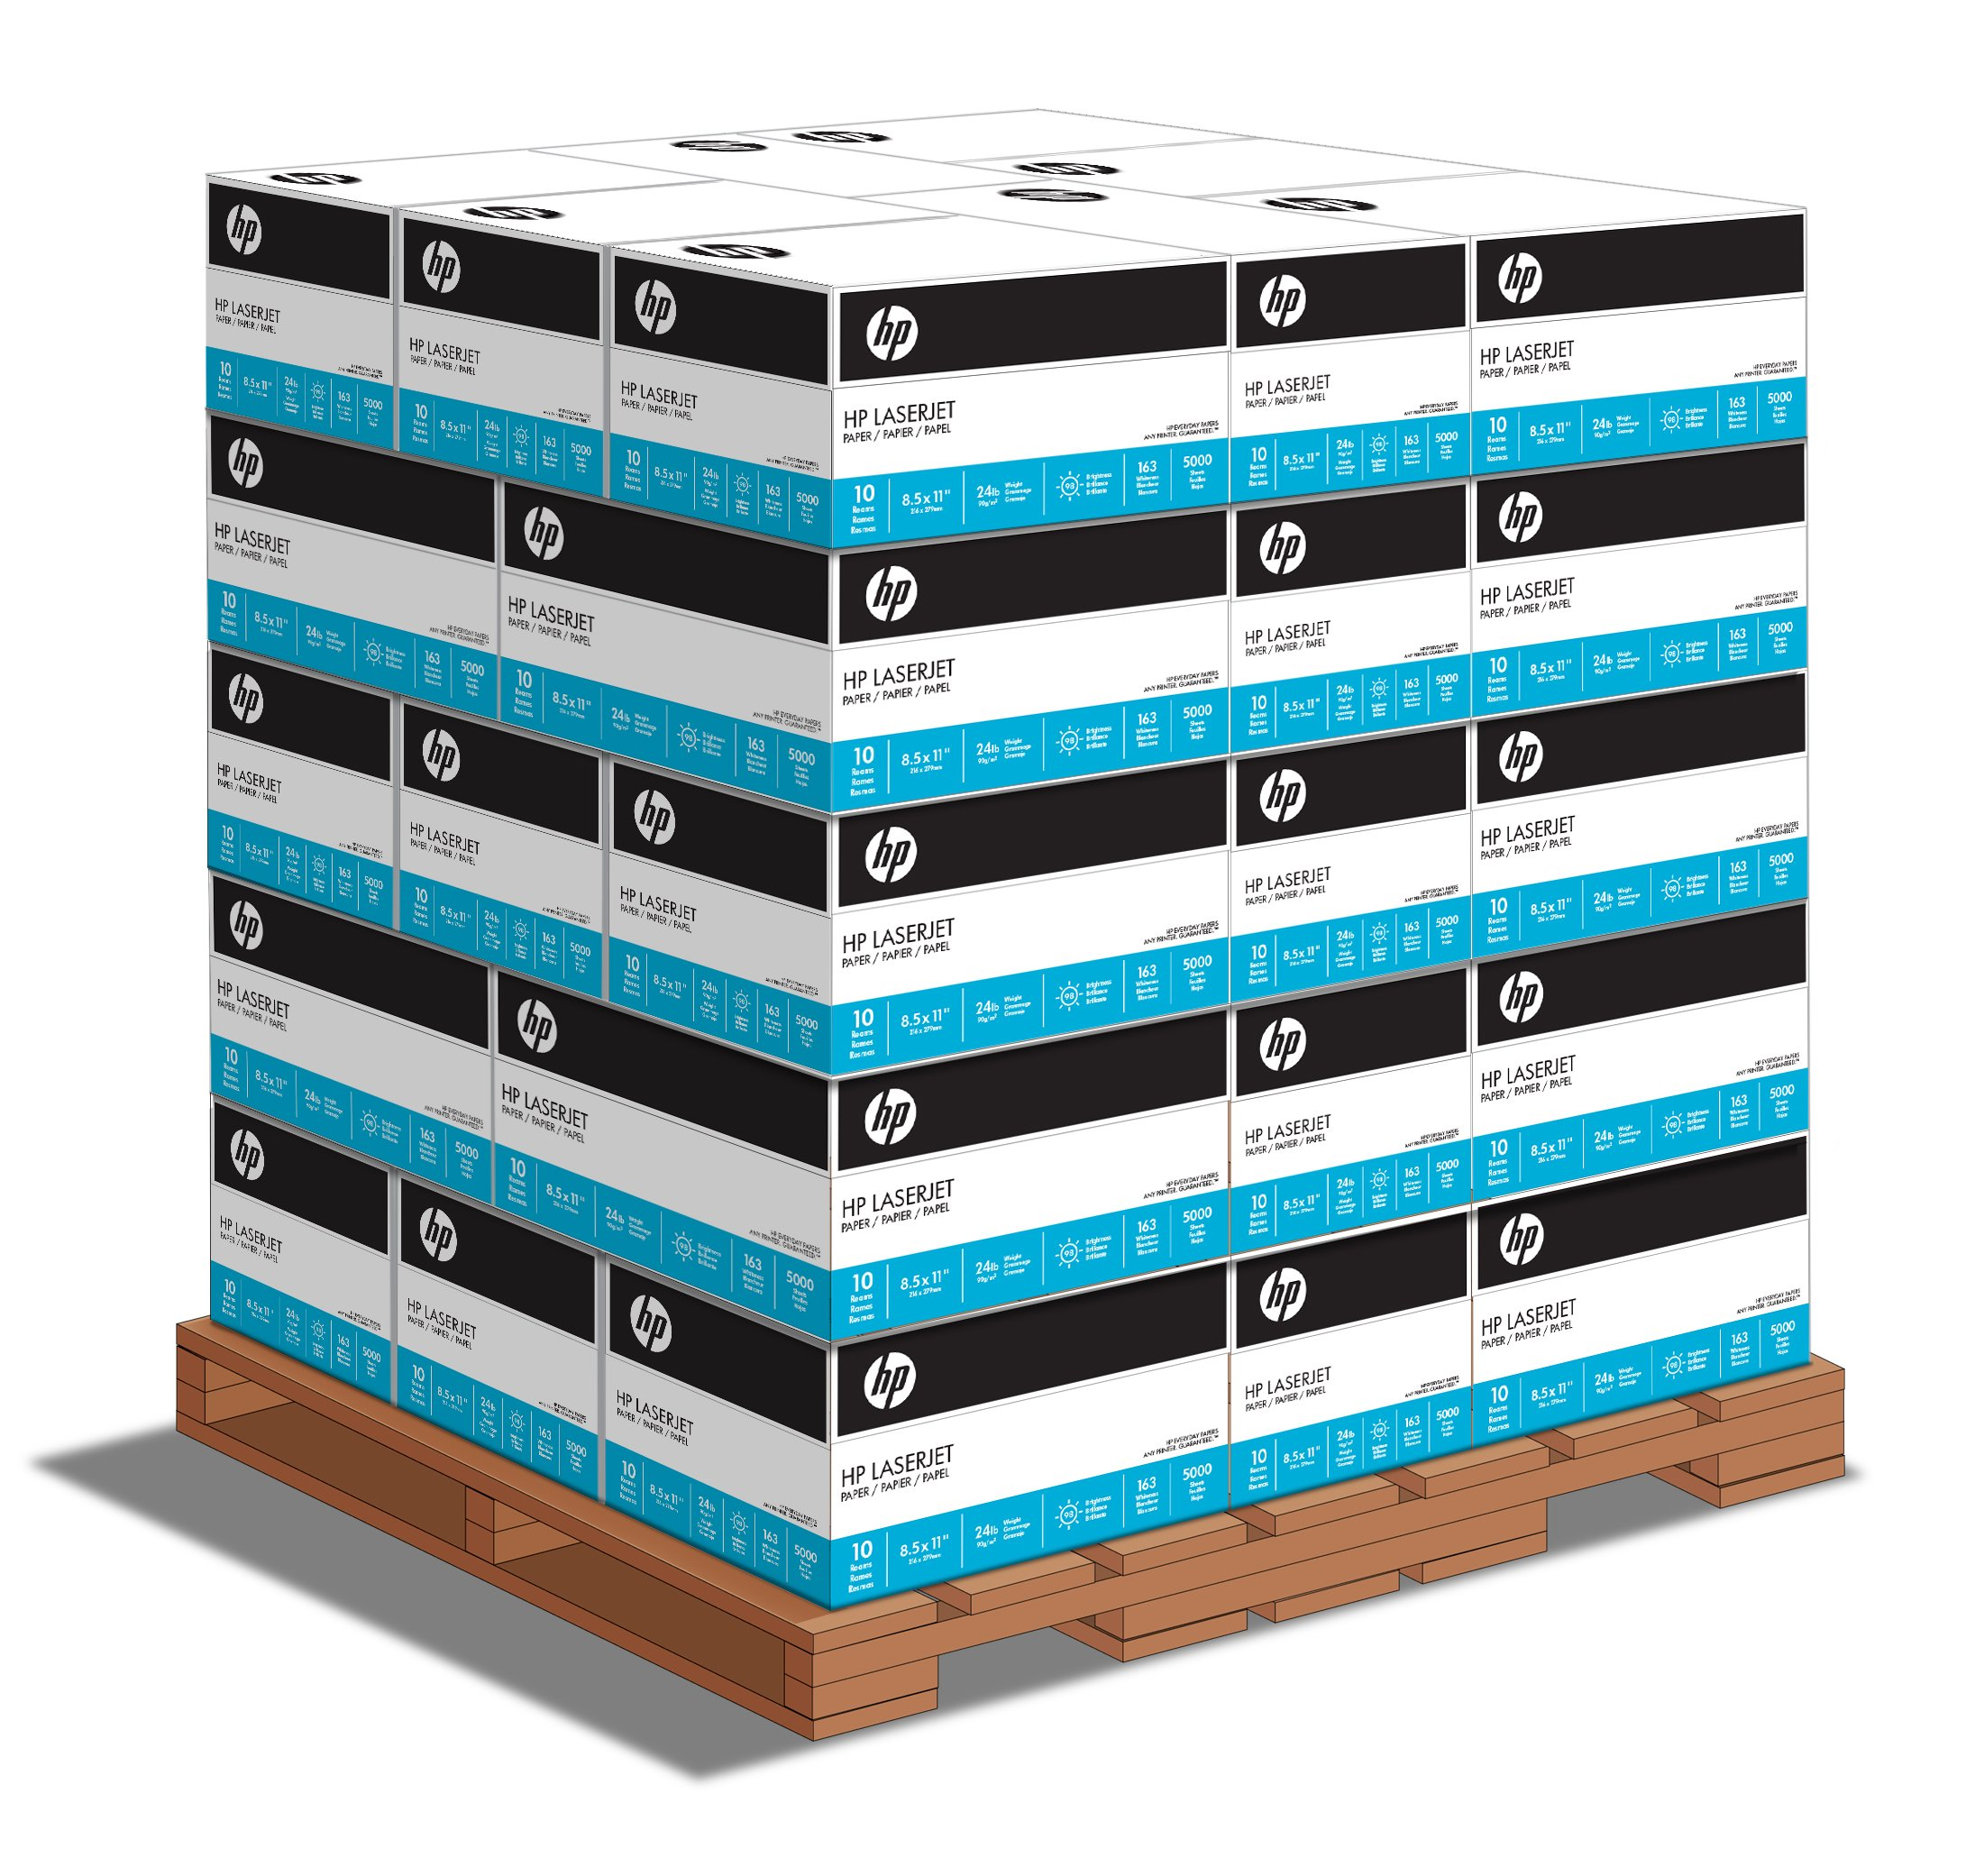 HP Paper, LaserJet, 24lb, 98 Bright, 8.5 x 11, Letter, 5000 Sheets per Carton, 32 Cartons per Pallet, 160,000 Sheets (112400PLT) Pallet Pricing, Made In The USA